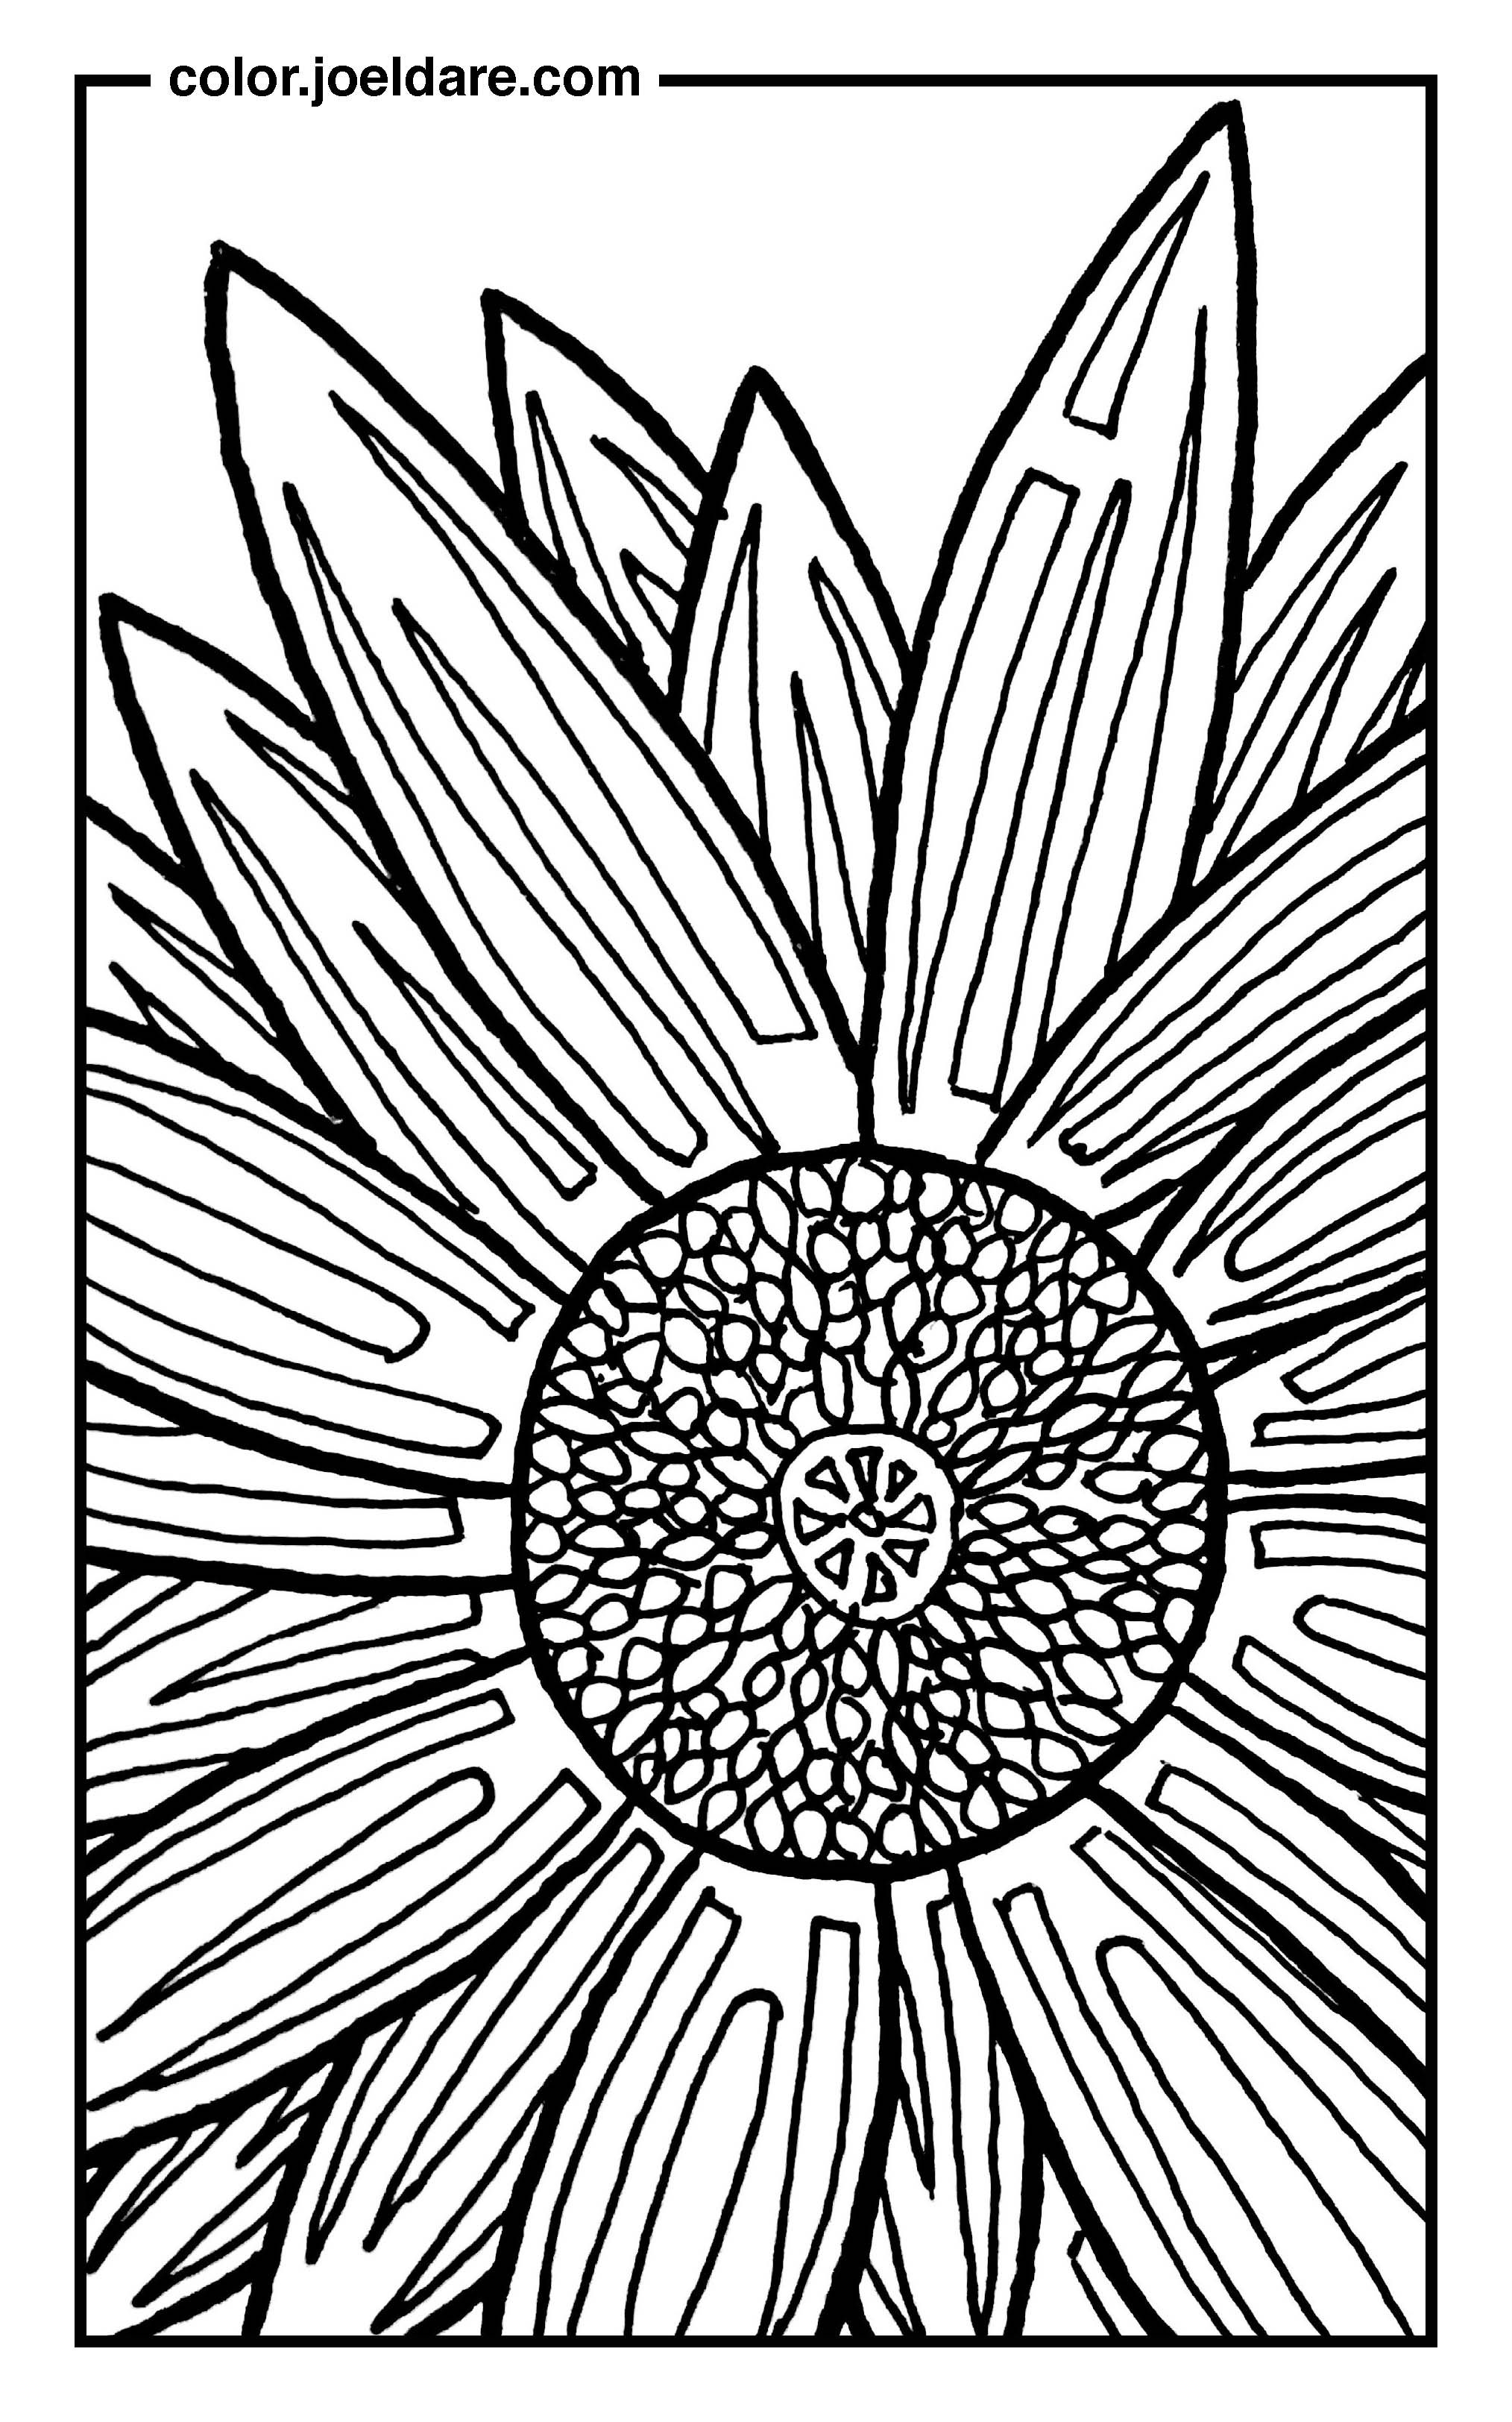 Sunflower Coloring Page - Imgur | color 5 | Pinterest | Sunflowers ...